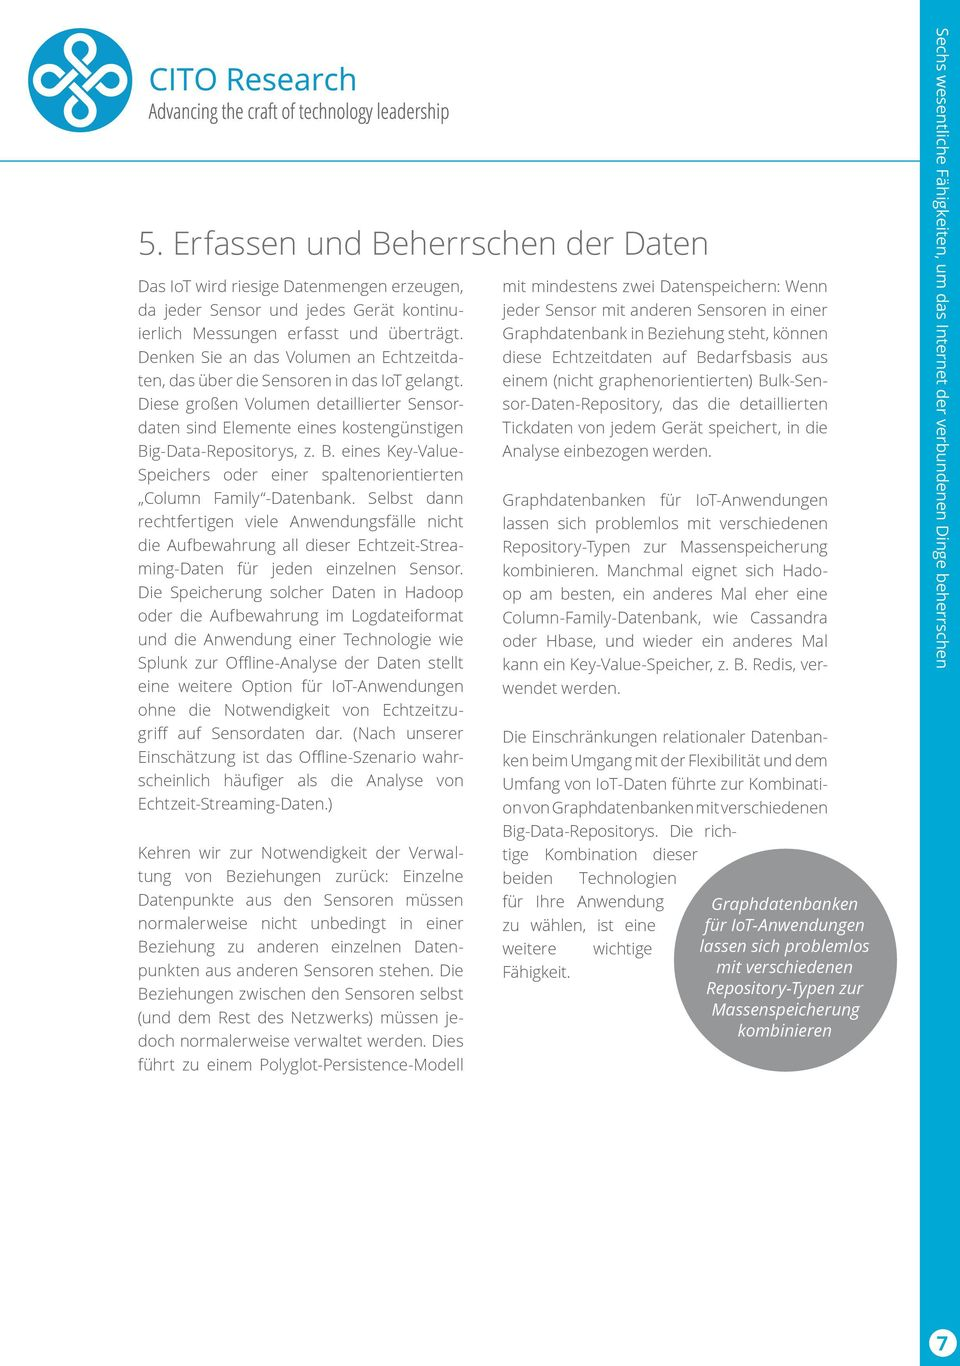 g-Data-Repositorys, z. B. eines Key-Value- Speichers oder einer spaltenorientierten Column Family -Datenbank.